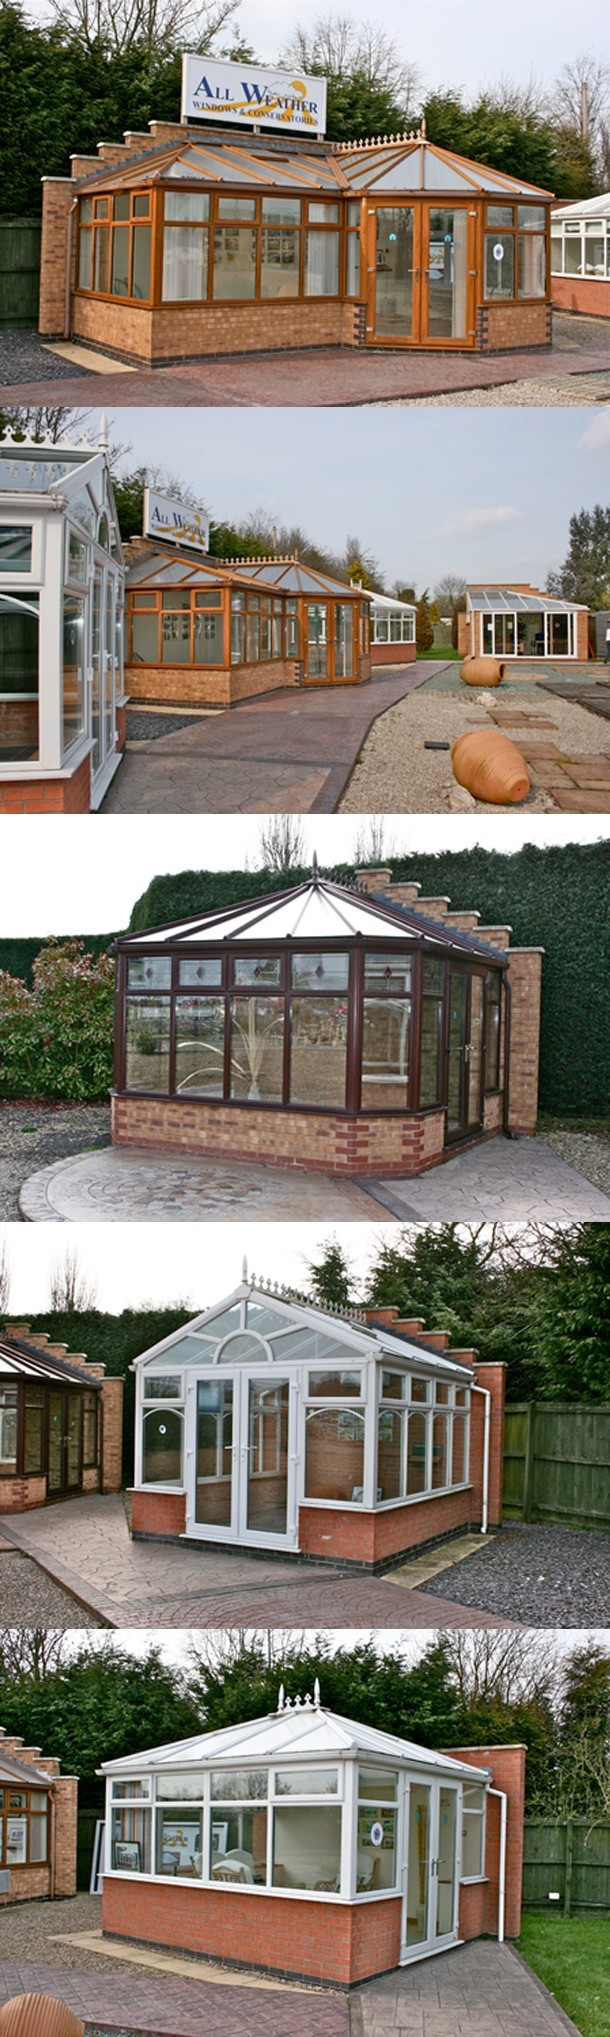 Ullesthorpe Conservatory Showroom